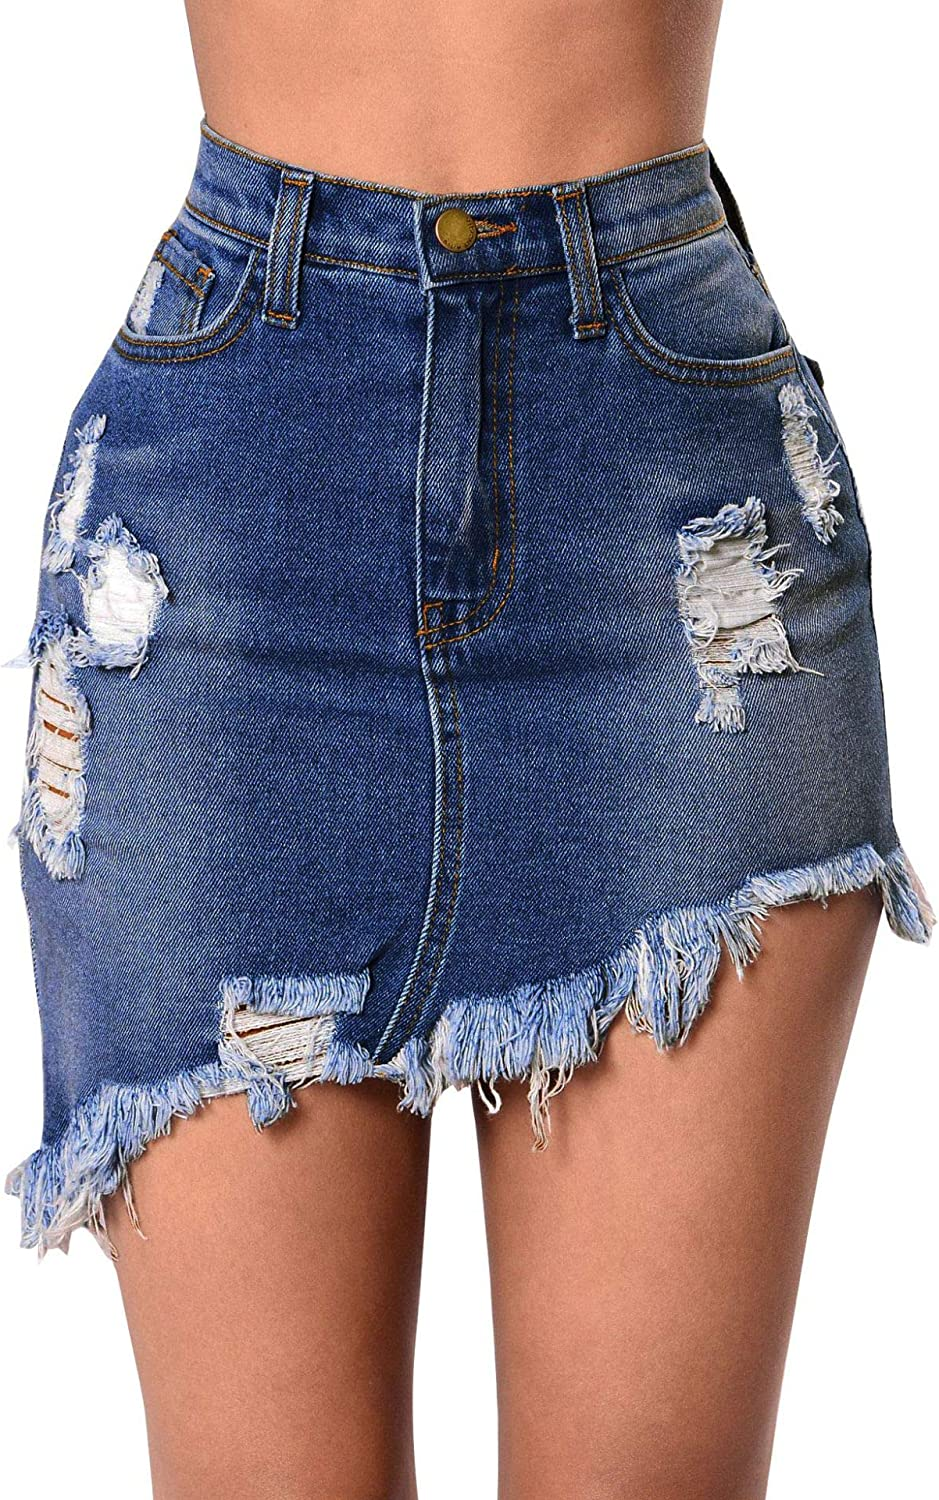 Women's Casual Mid Waisted Washed Frayed Fit Stretch Denim Jean Short Skirt with Pockets